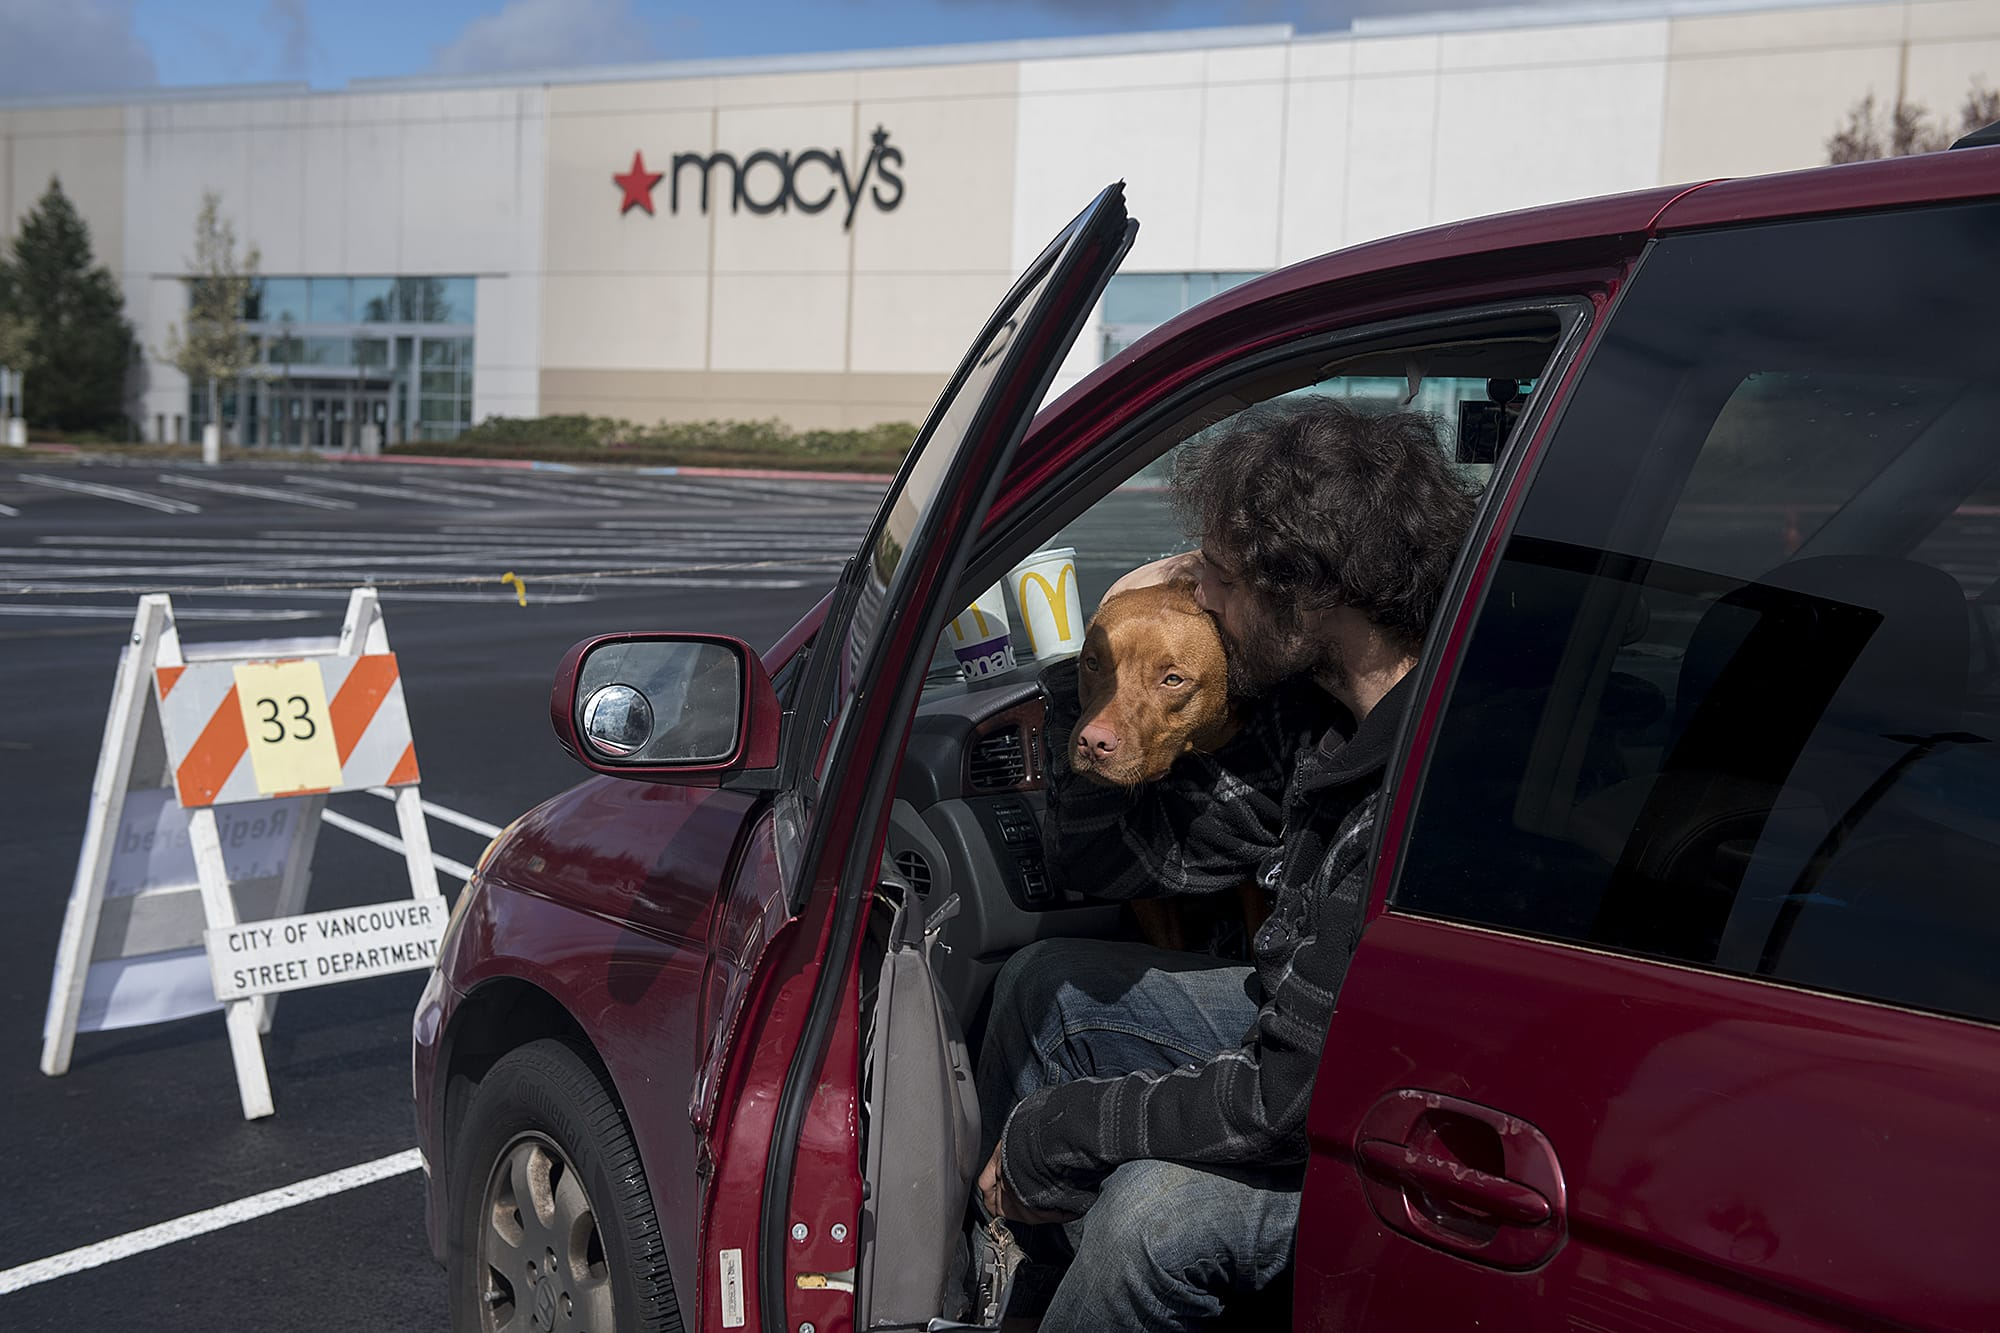 Gerhard Bush-Tschosik of Vancouver shares a kiss with his pit bull mix, Reece, 1, after securing their parking spot at Vancouver Mall on Thursday morning, April 2, 2020. Officials registered car campers vehicles on a first-come, first serve basis starting Thursday.